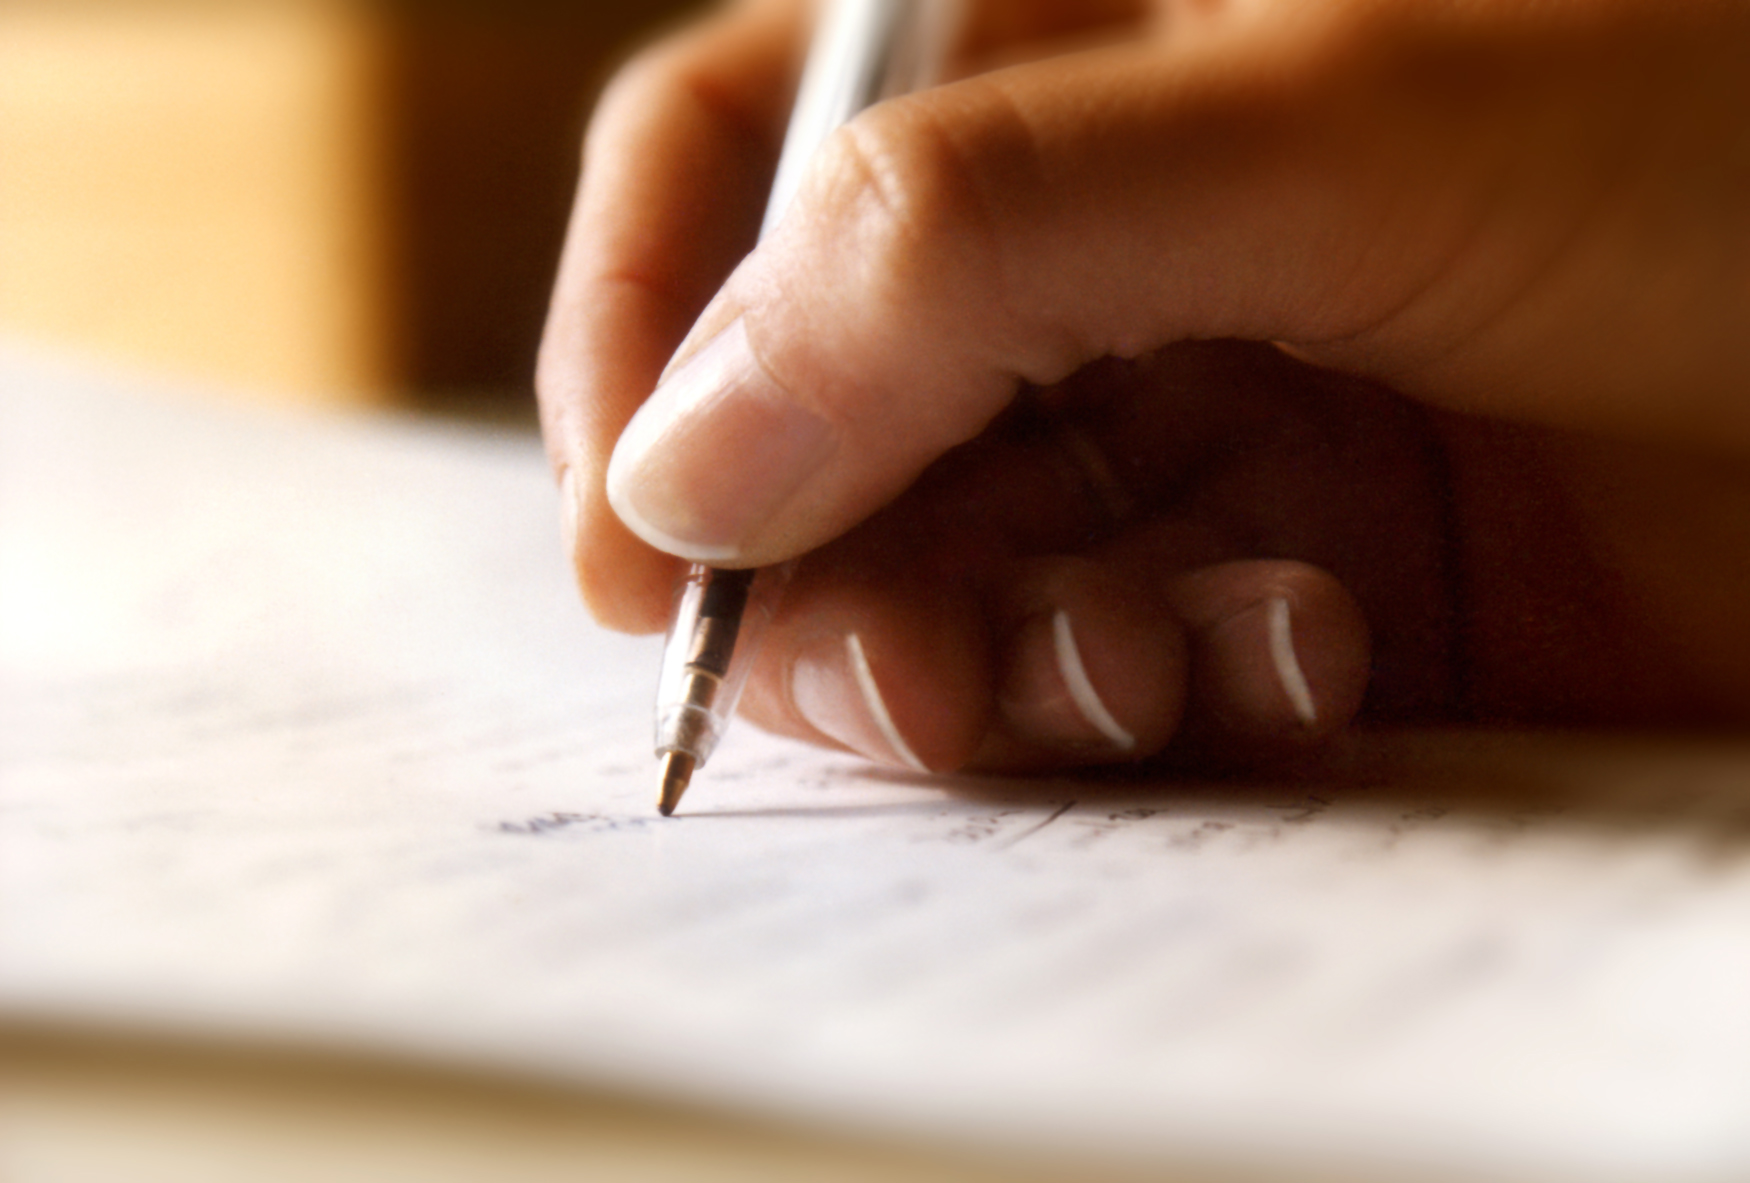 A woman's hand writes with a pen